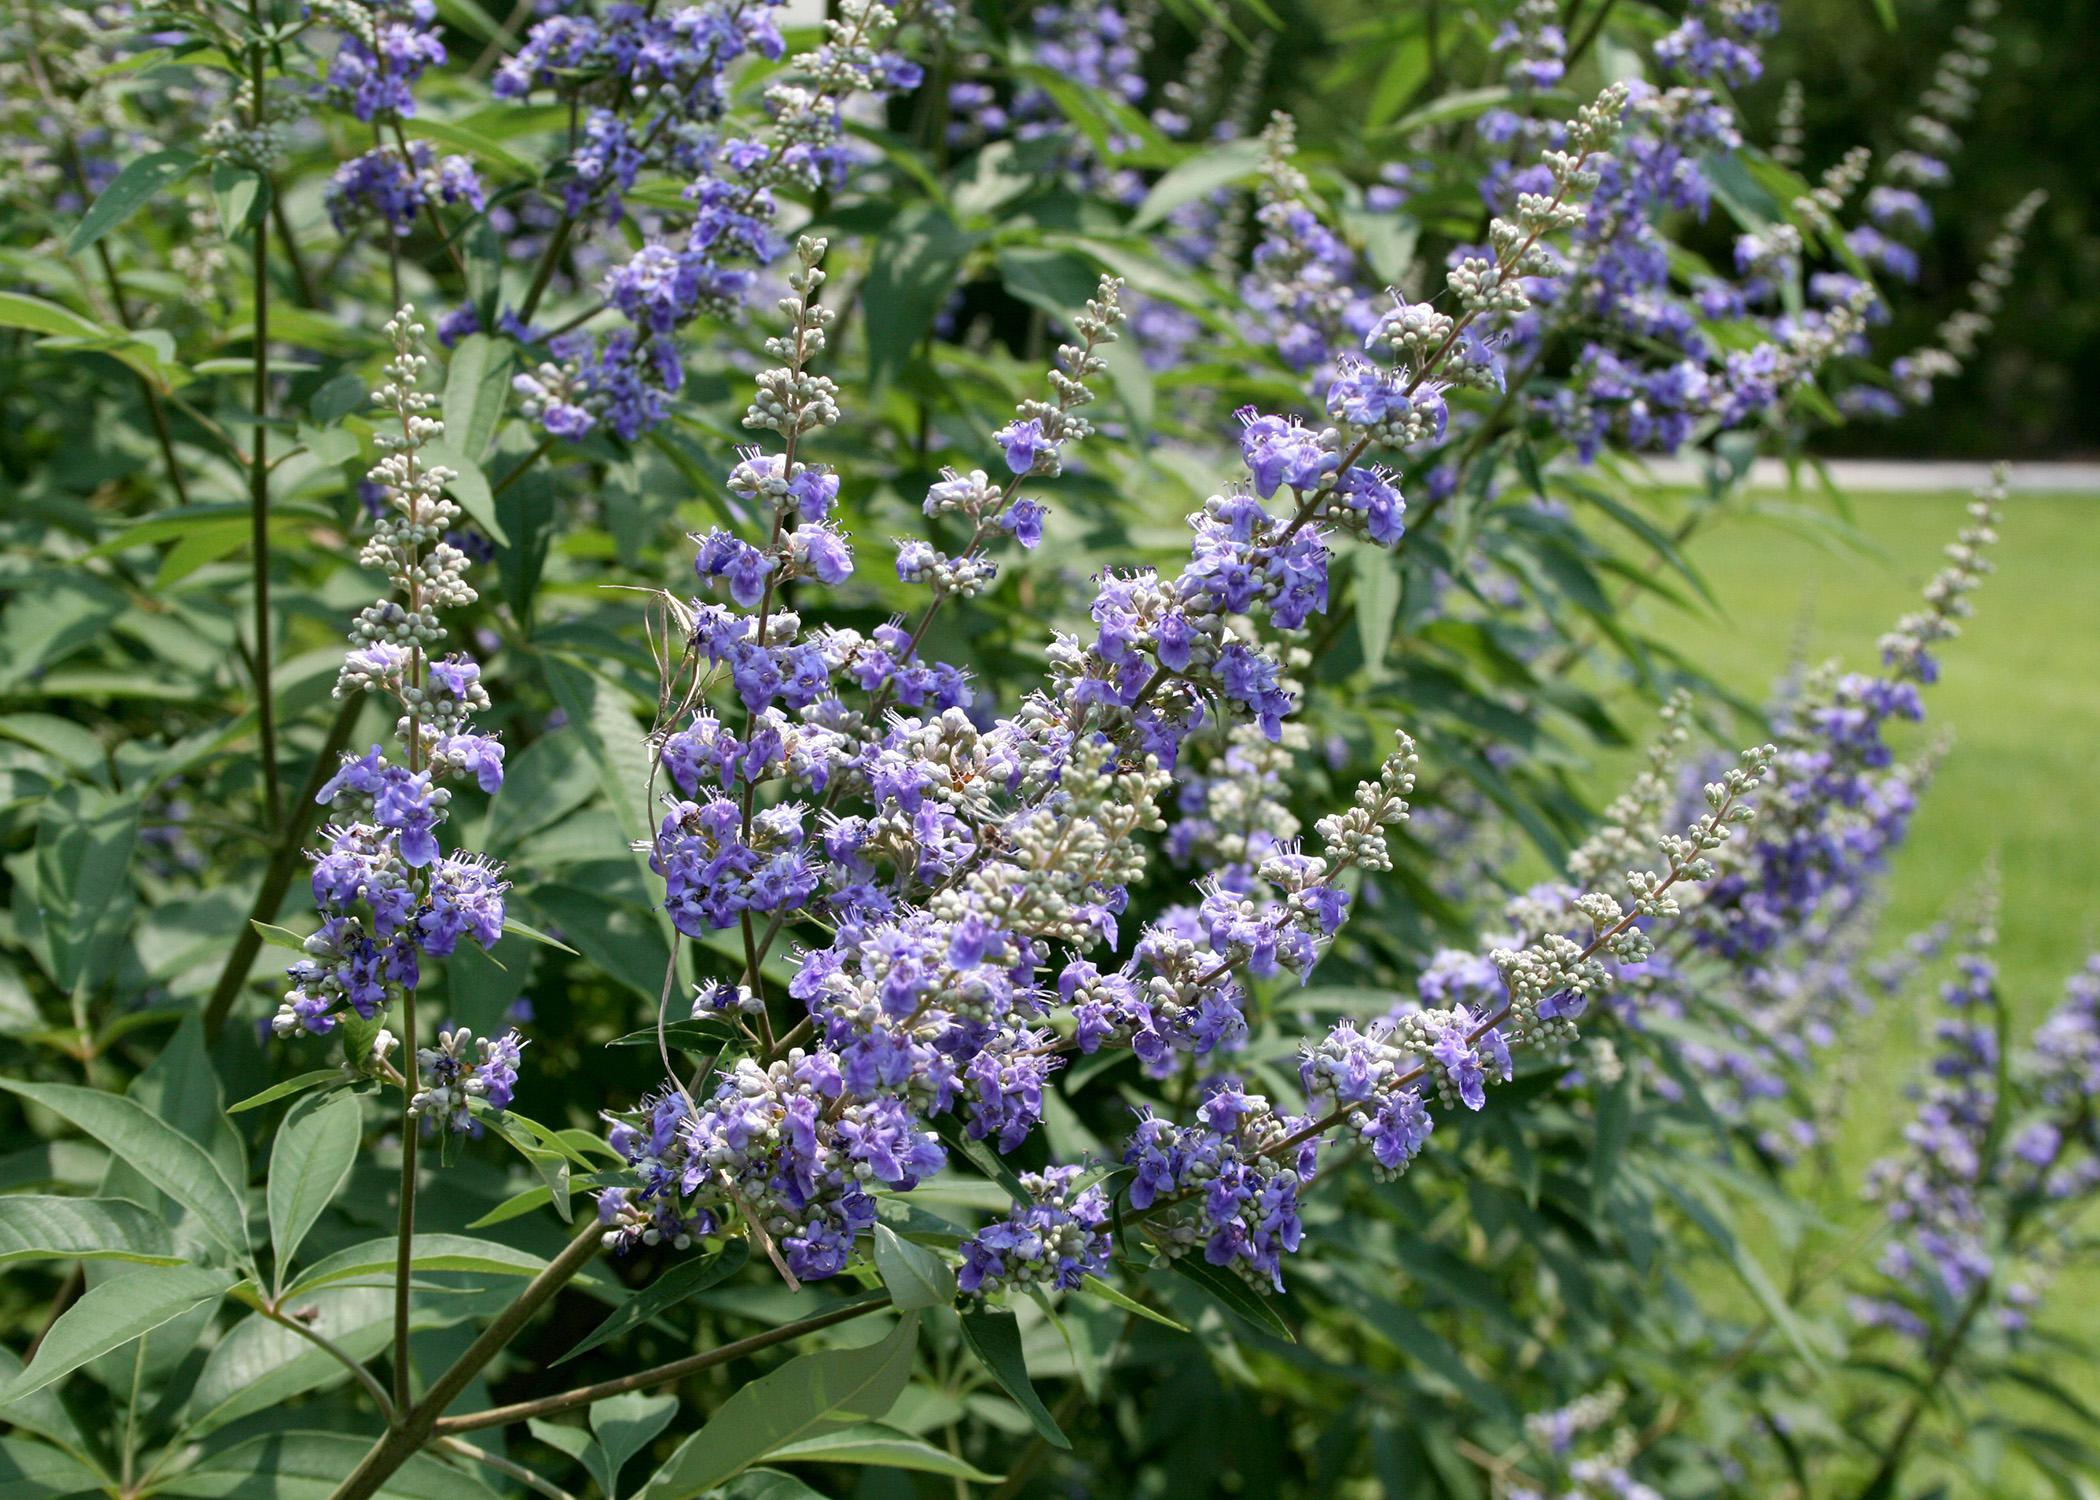 Beautiful purple flowers and tolerance for drought make Vitex an outstanding small tree to be grown in the full sun of Mississippi landscapes. (Photo by MSU Extension Service/Gary Bachman)